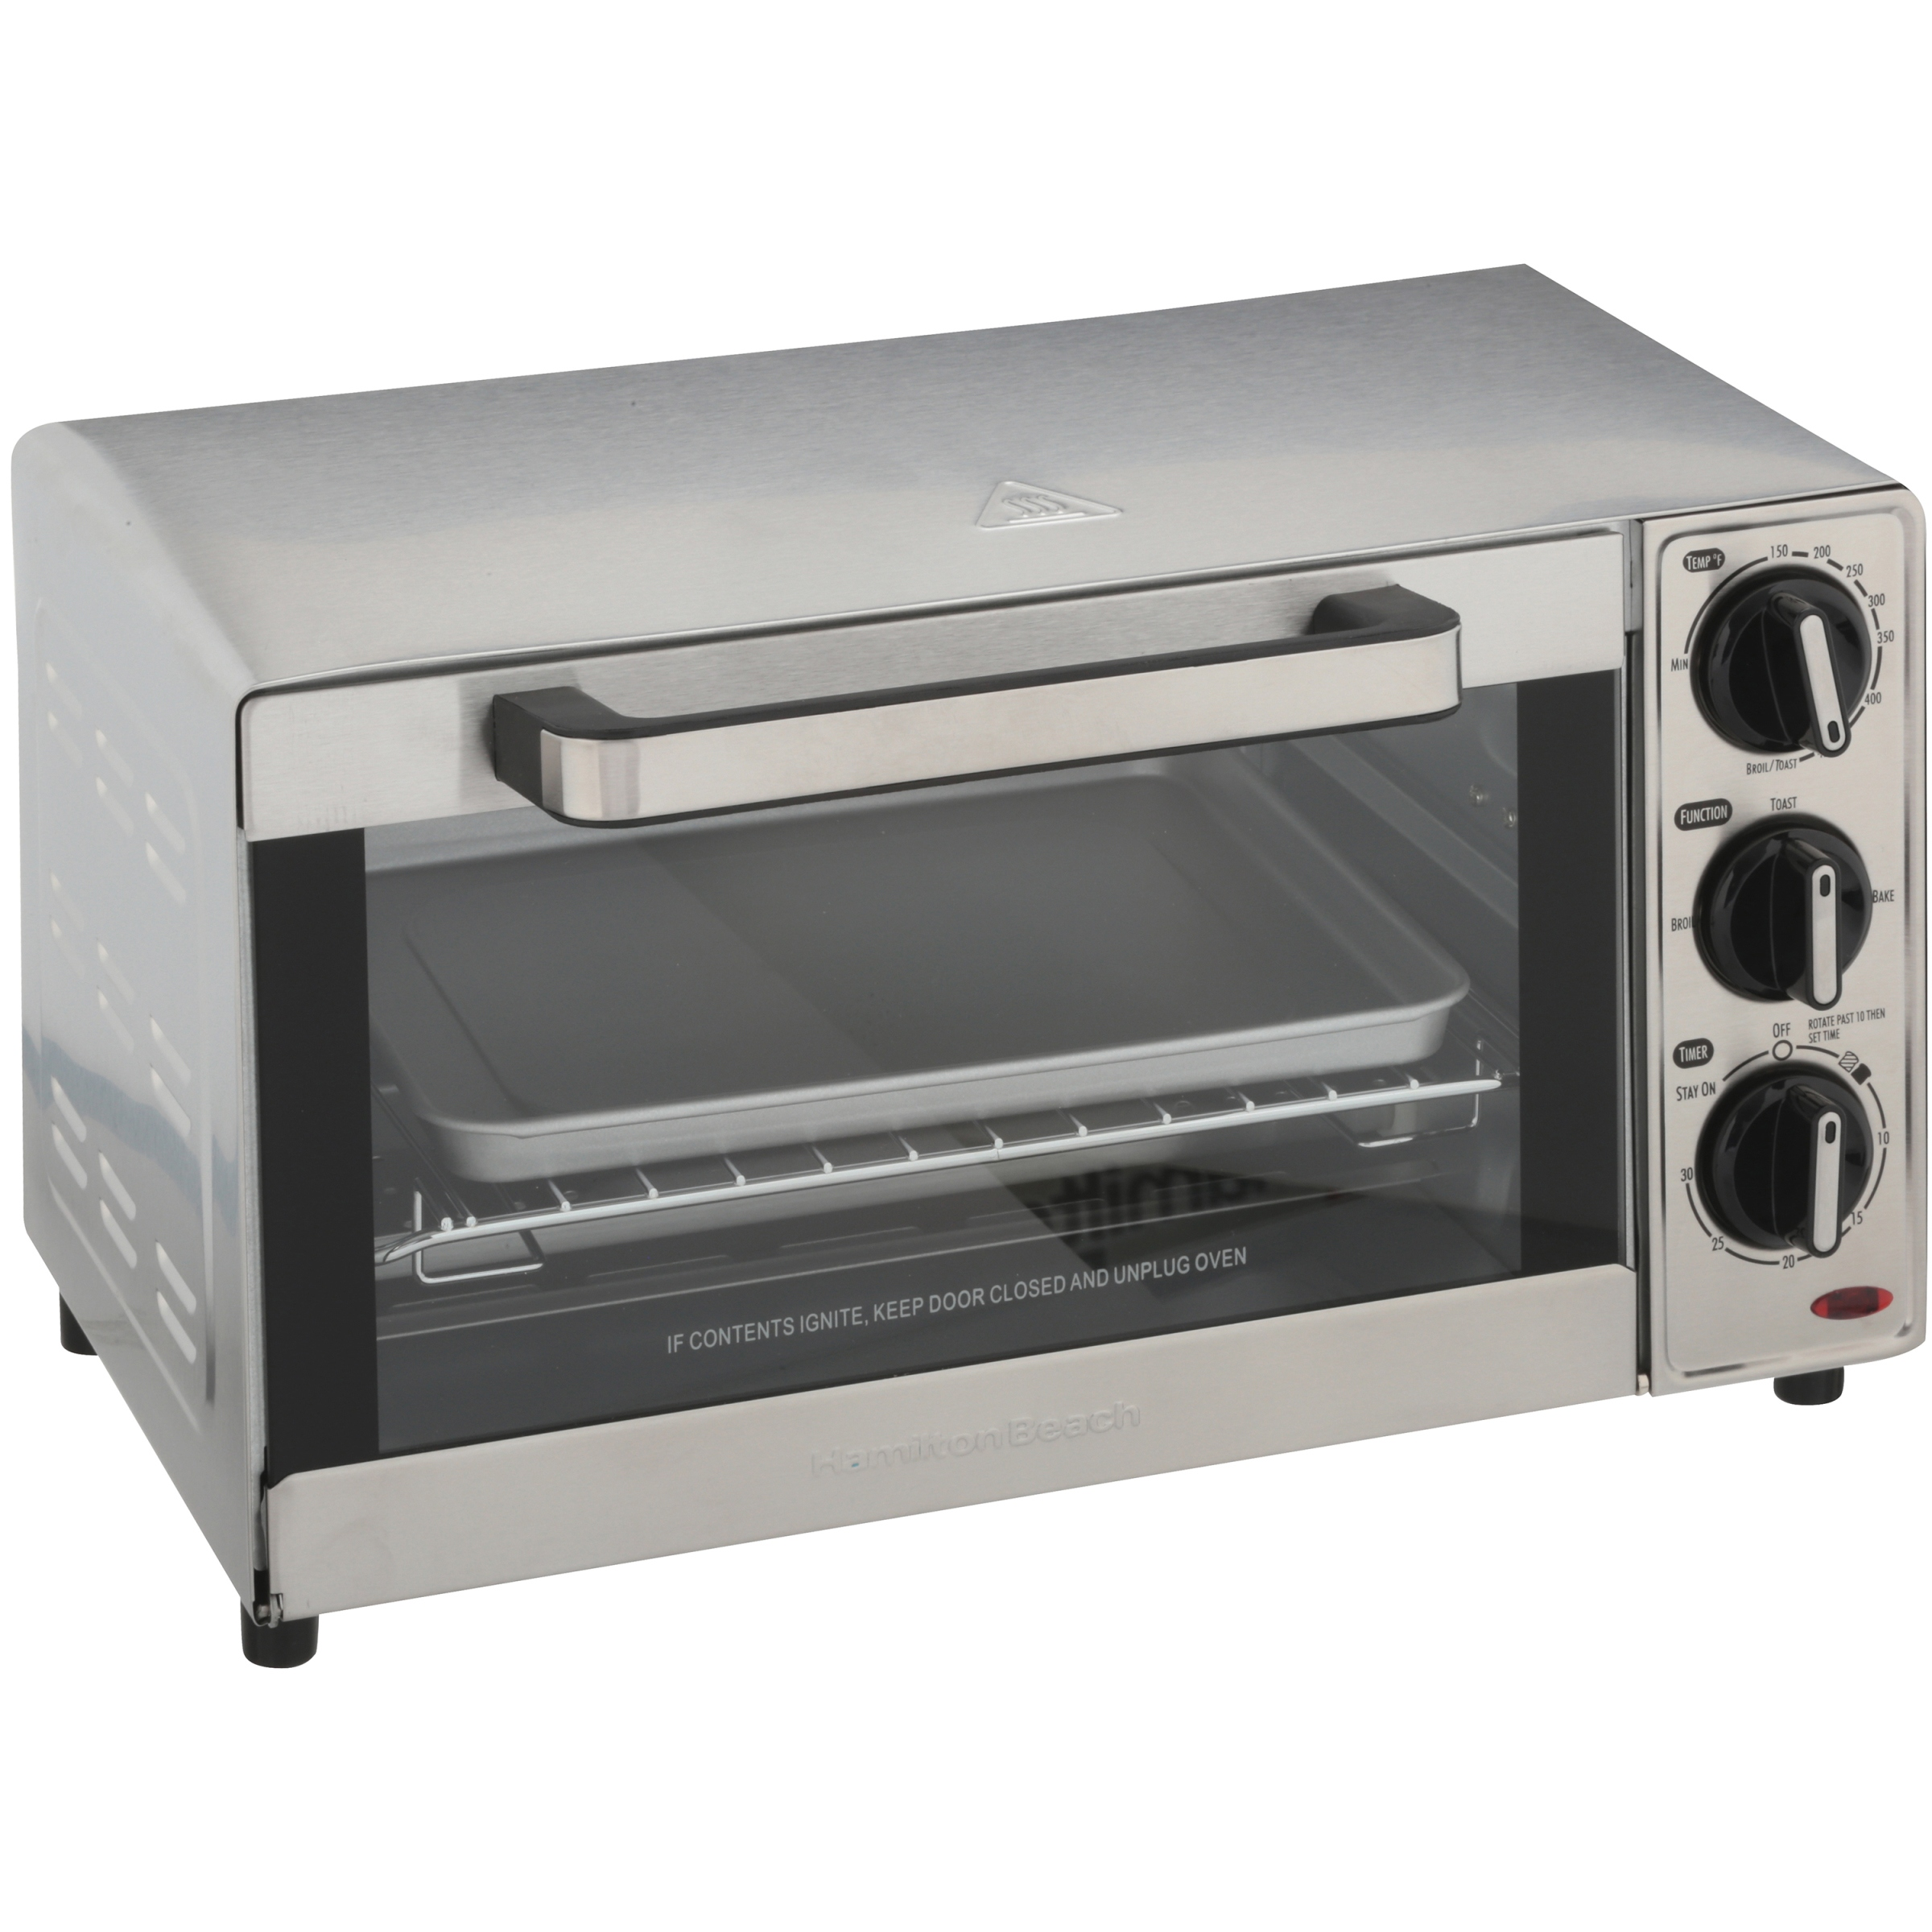 Hamilton Beach Countertop Toaster Oven | Model# 31401